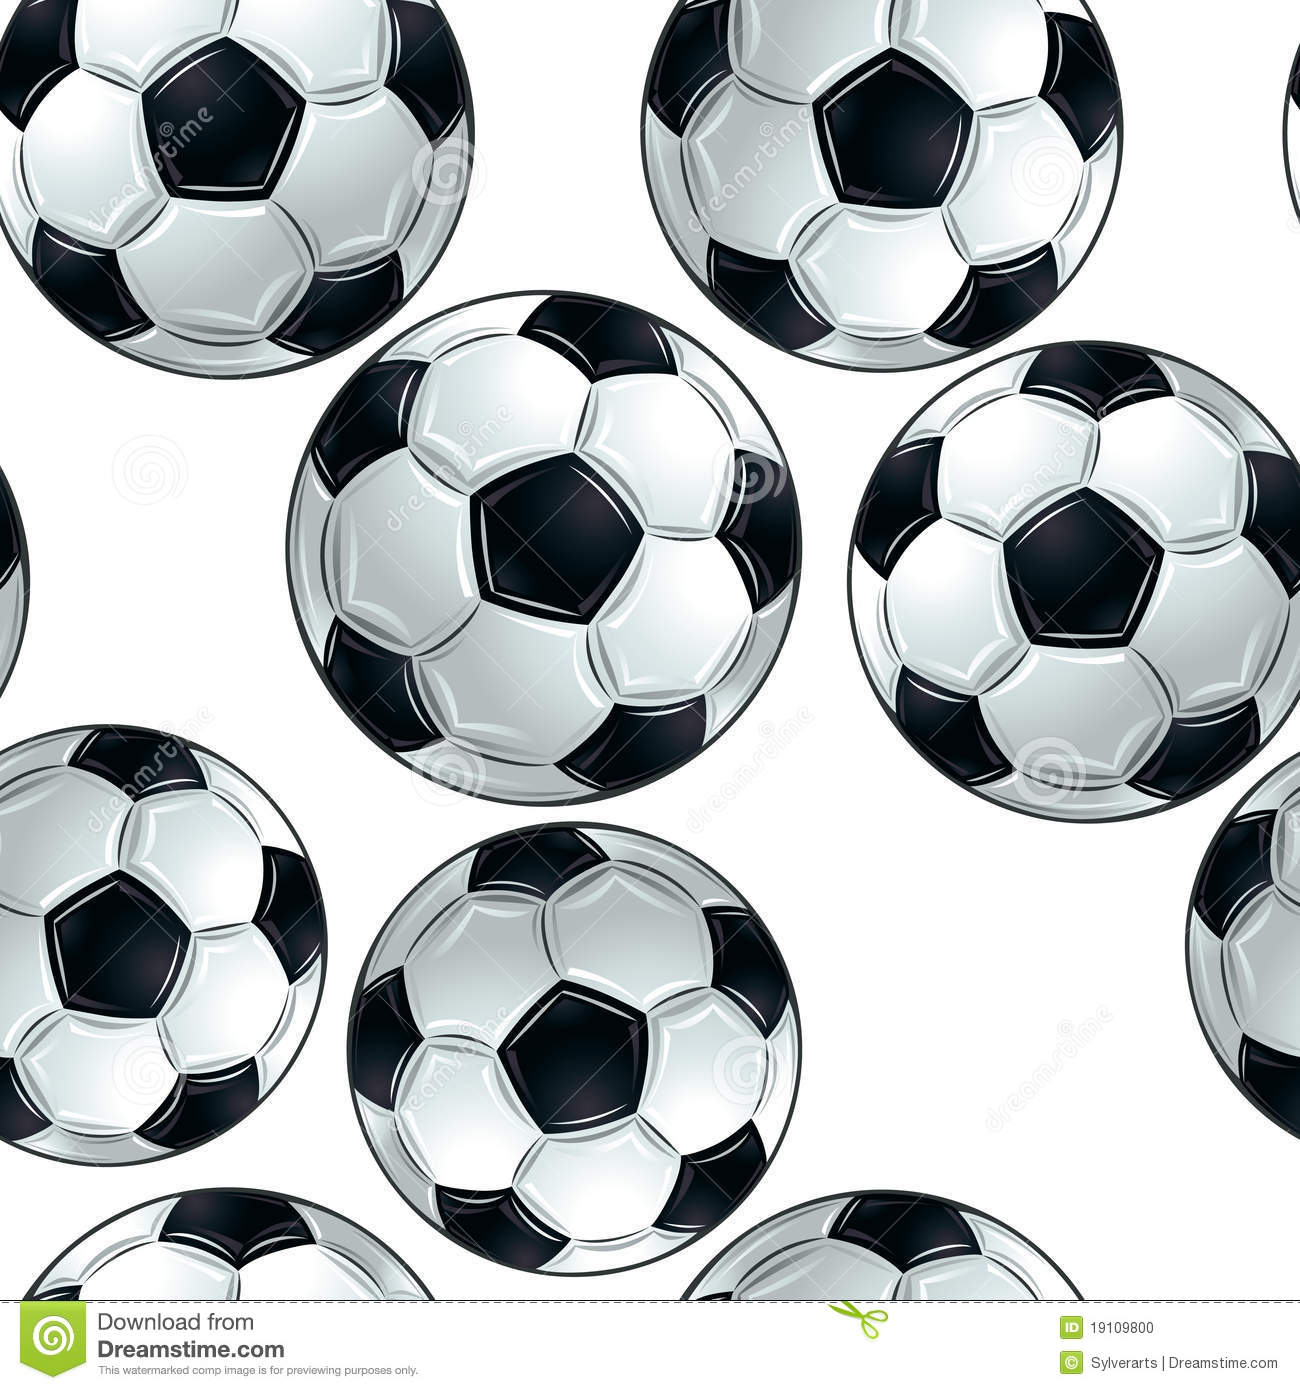 Soccer Balls Seamless Pattern. Stock Photo - Image: 19109800